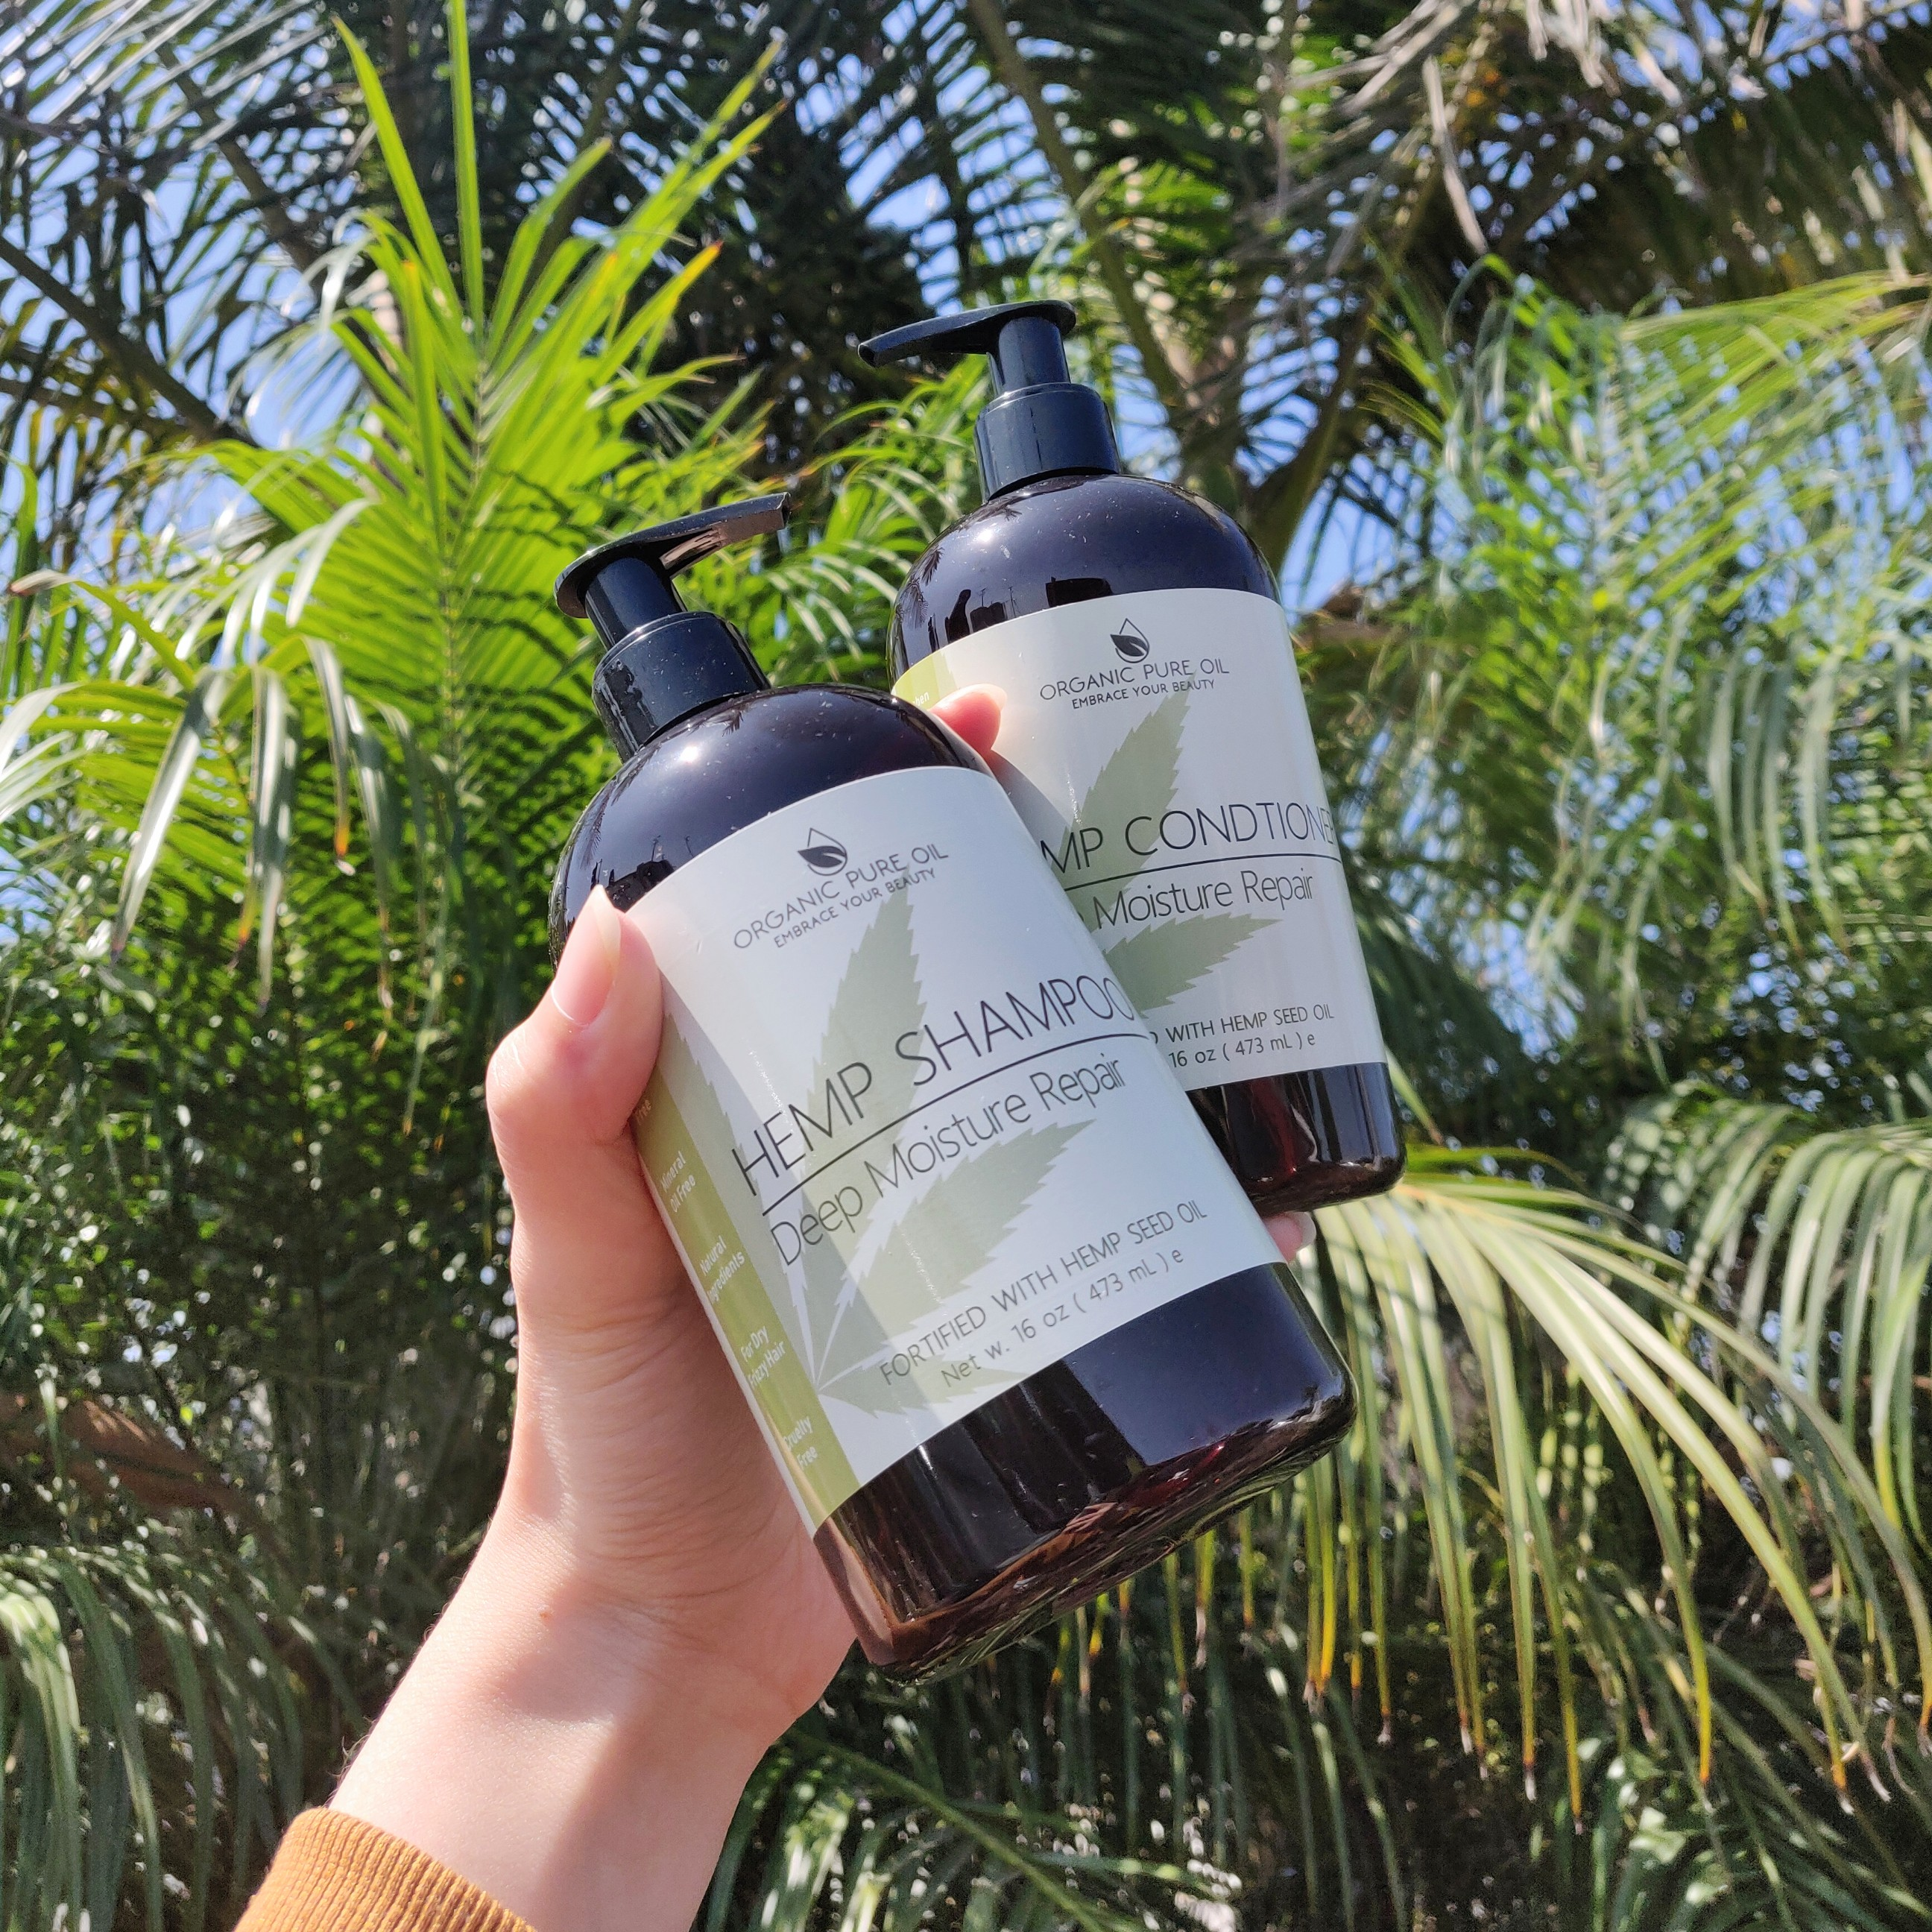 Hemp Extract Deep Moisture Repair Shampoo and Conditioner set for all hair types